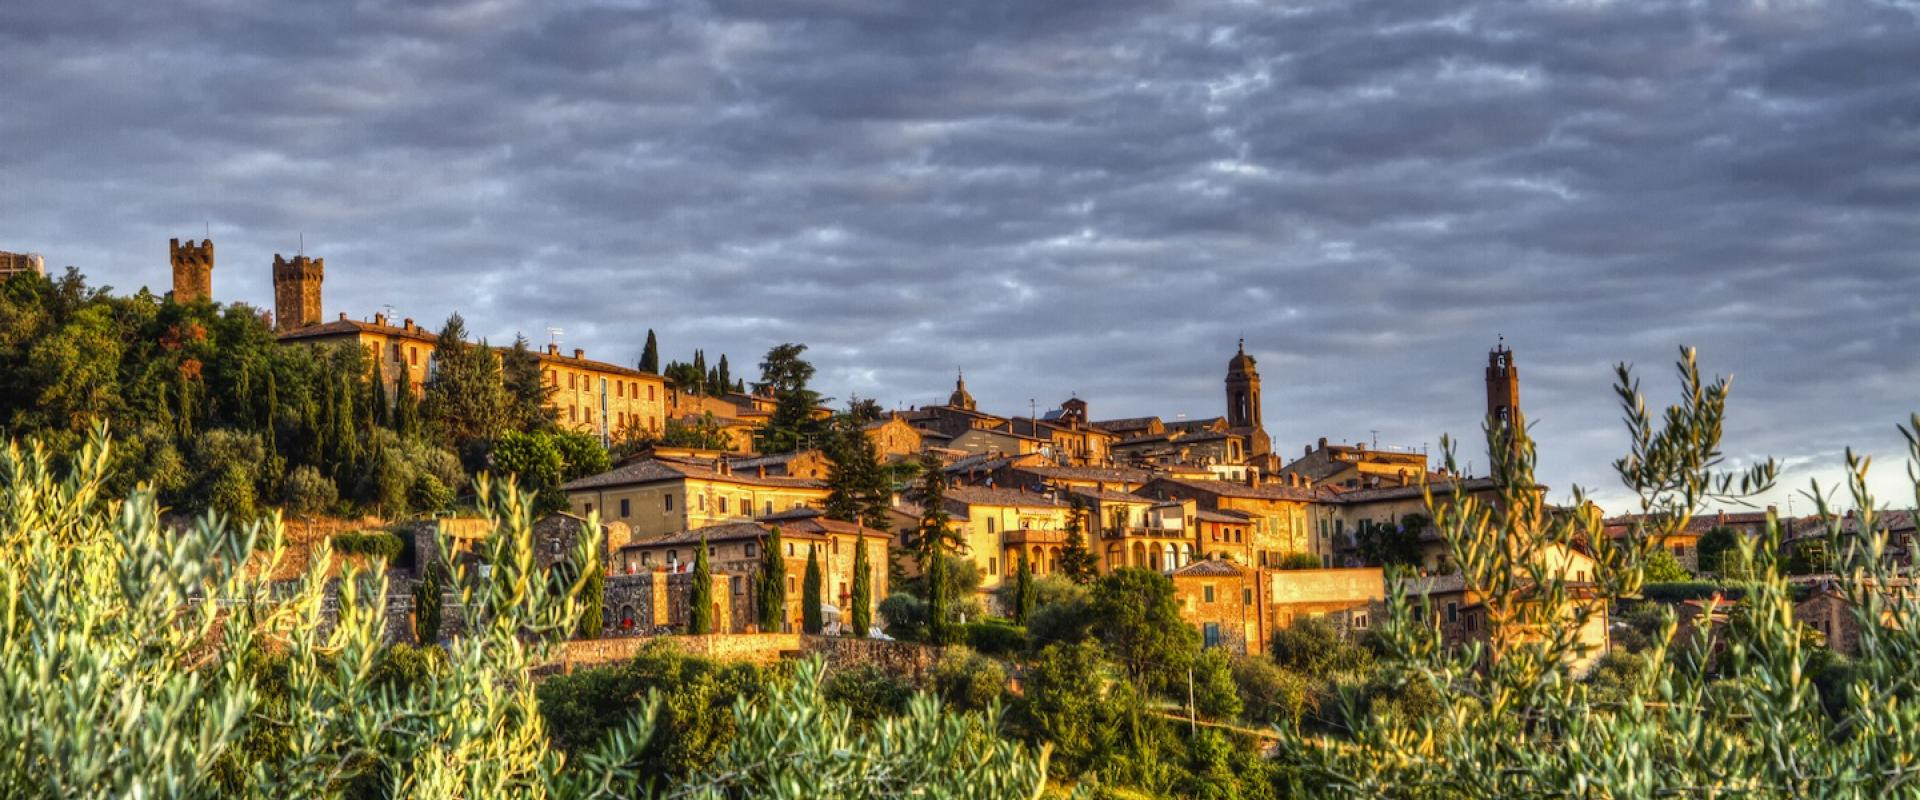 Visit of Montalcino Tuscany, Brunello's wine town!